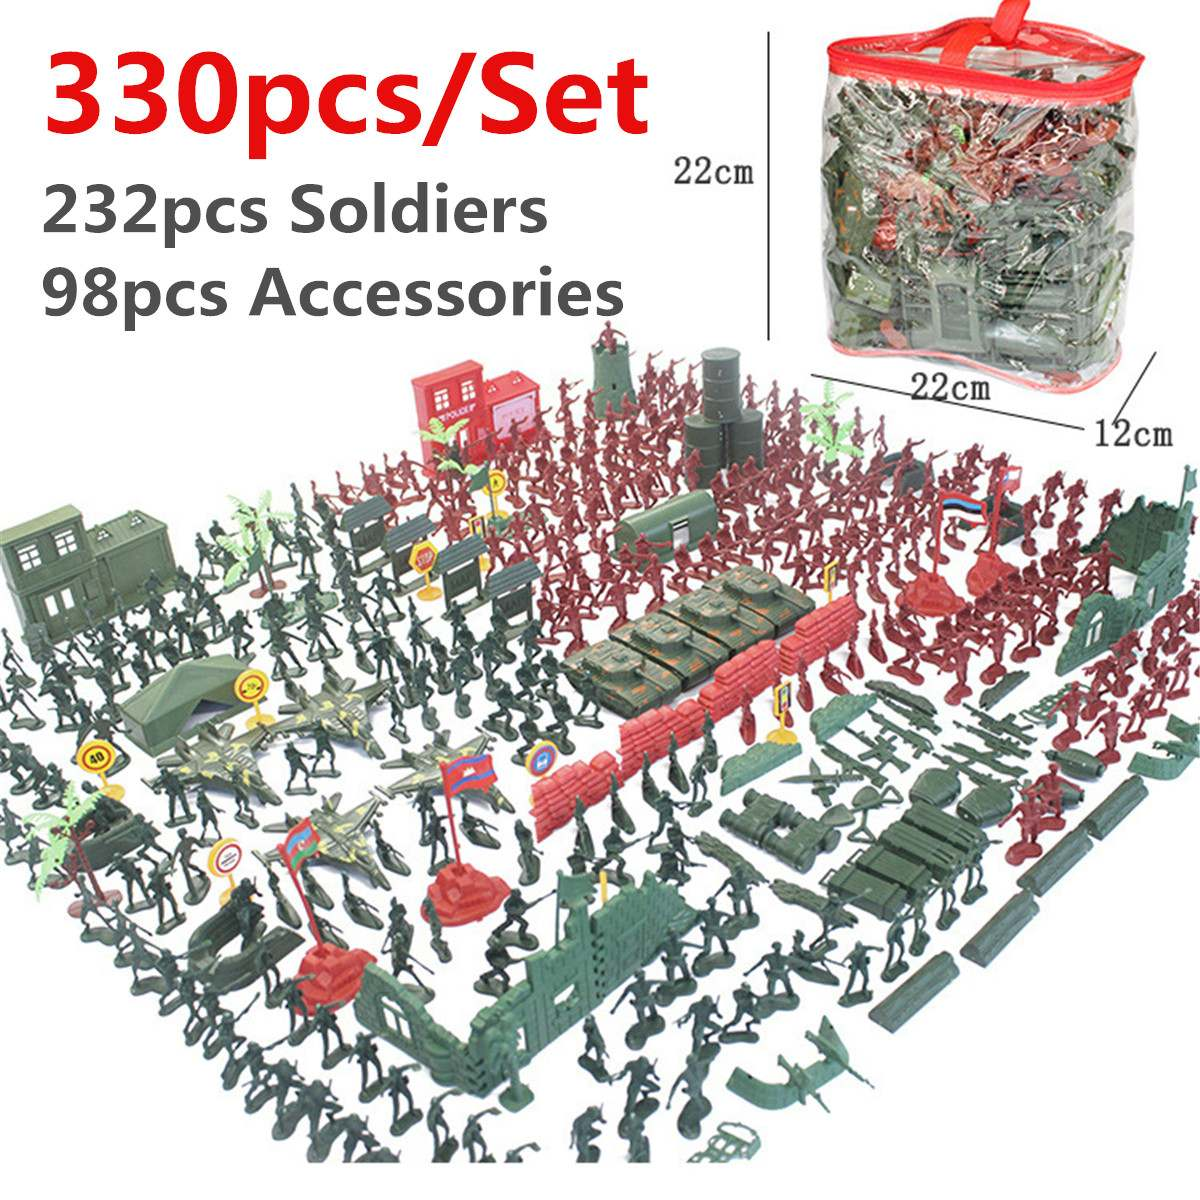 330pcs/set Military Plastic Model Playset Kit Toy  Army Men Figures & Accessories Decor Gift Model Toys For Children